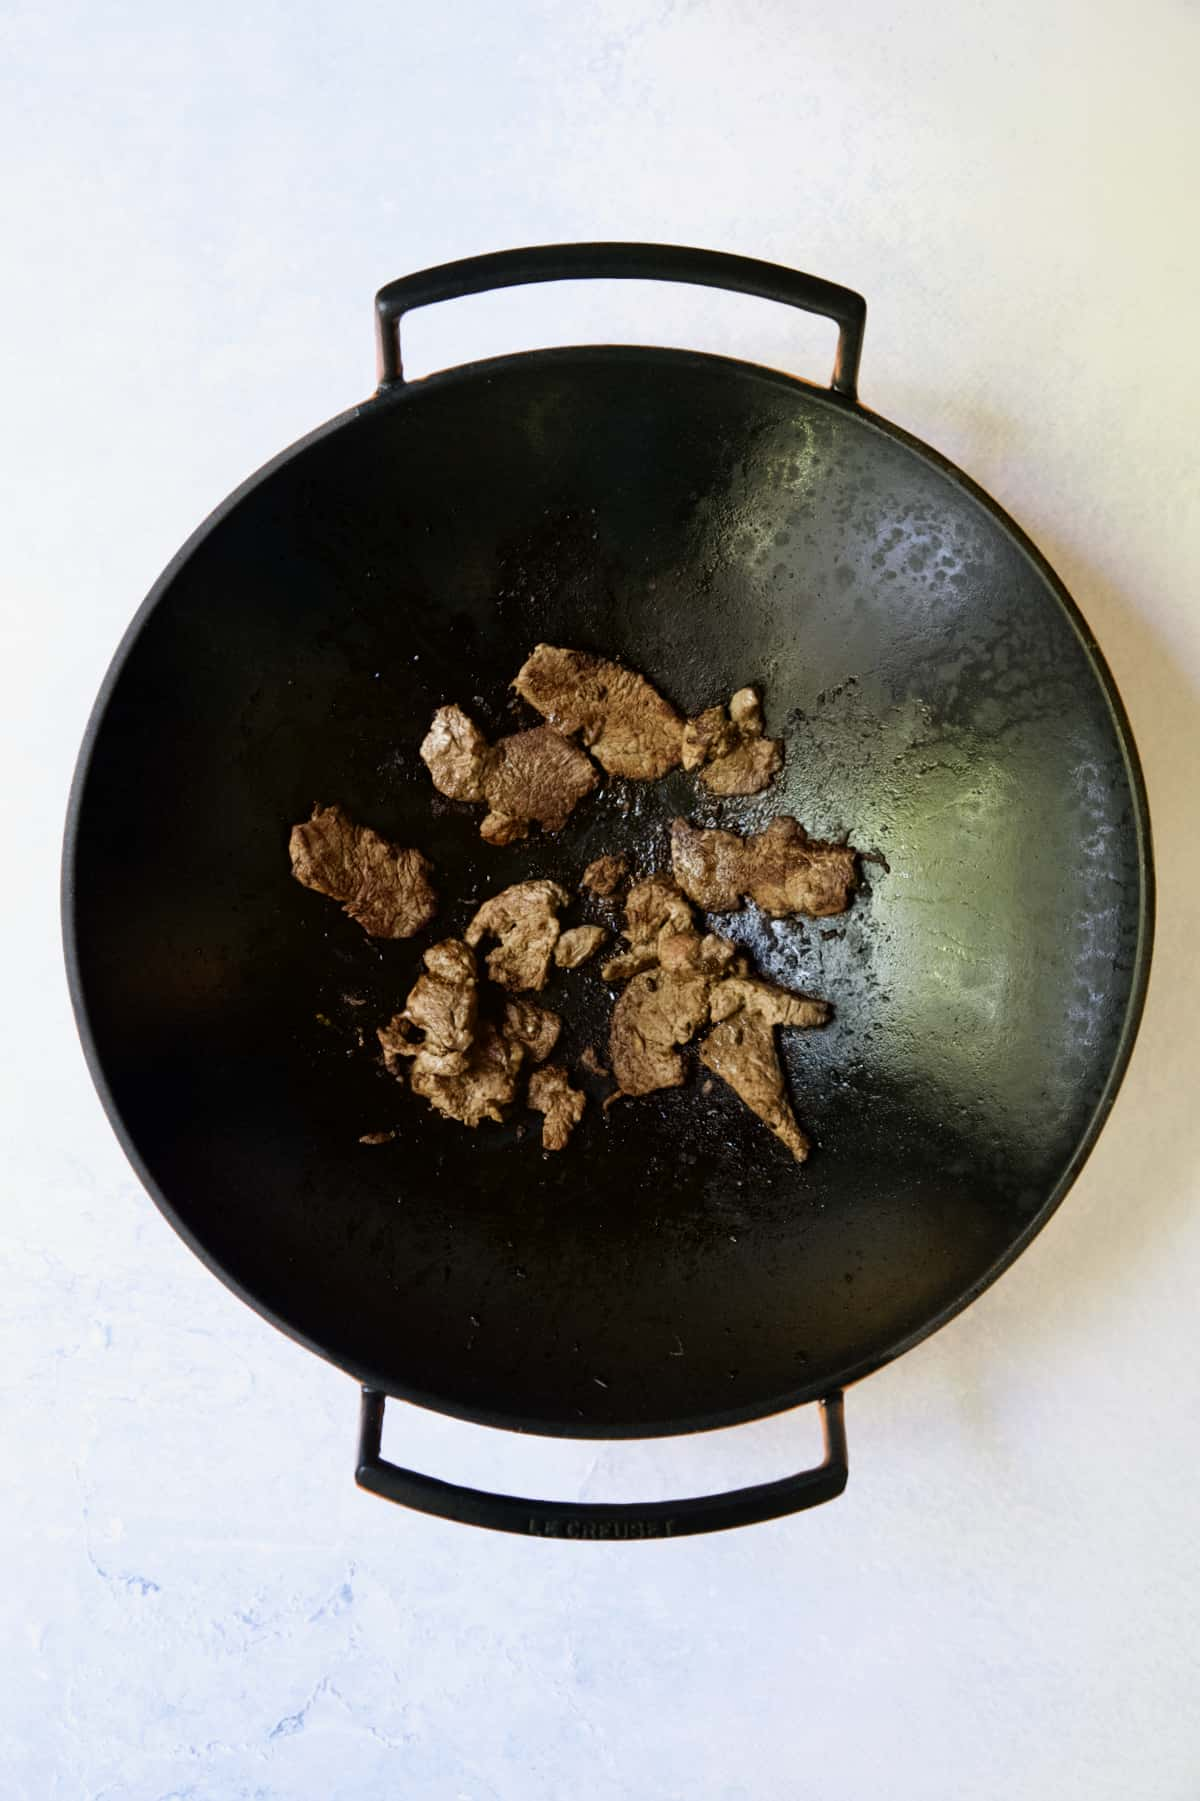 Beef being browned in cast iron wok.